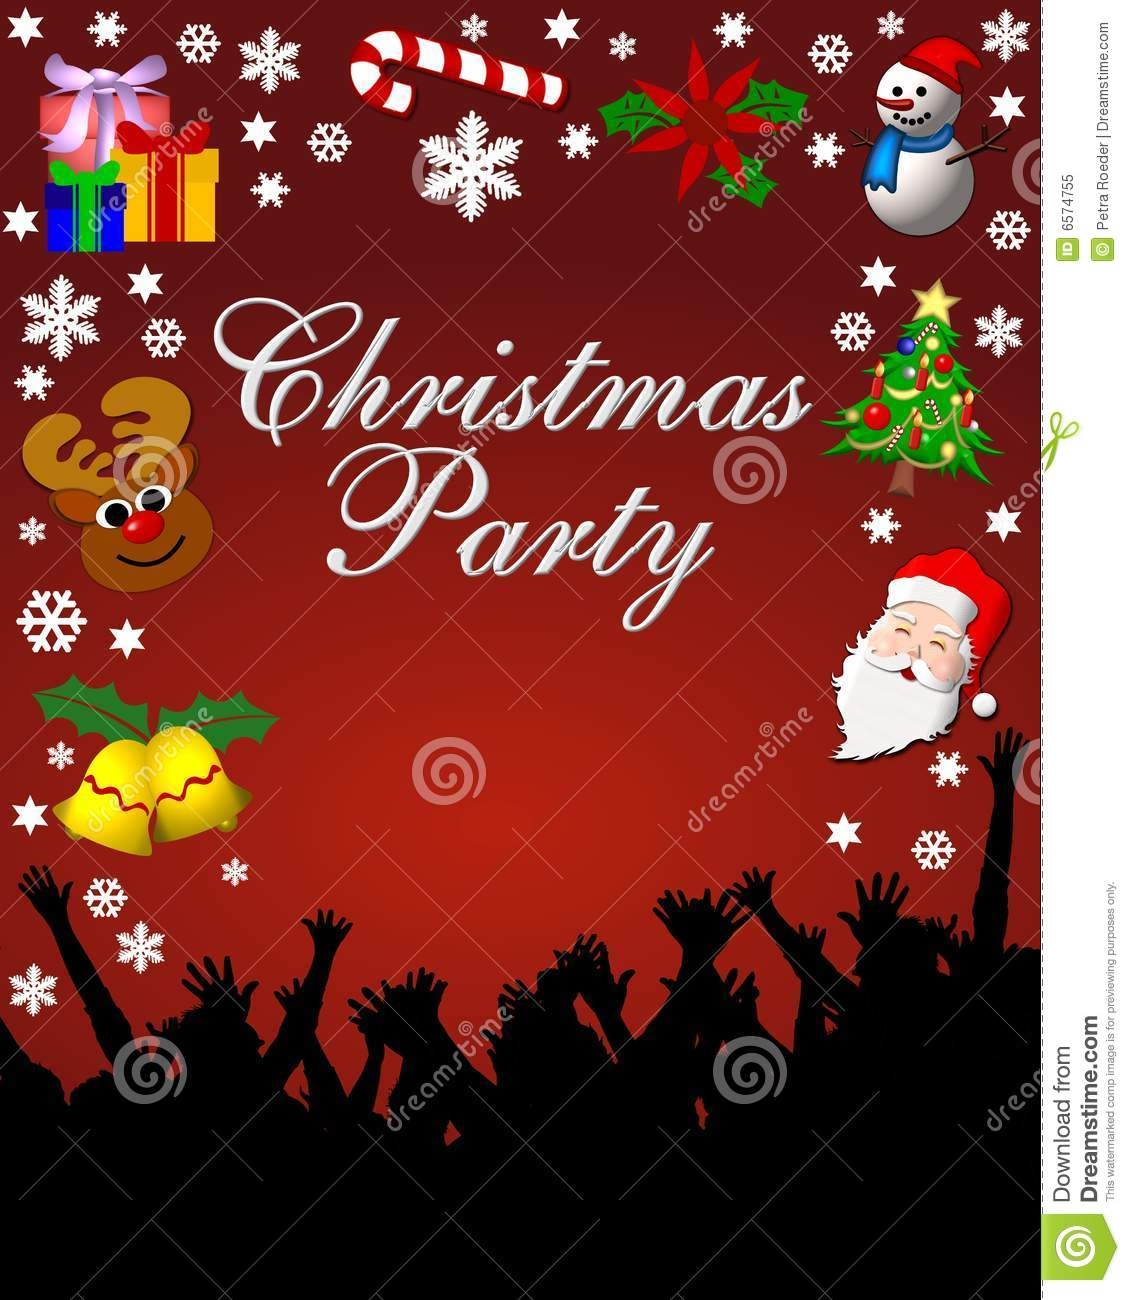 Christmas party stationary with holiday graphics